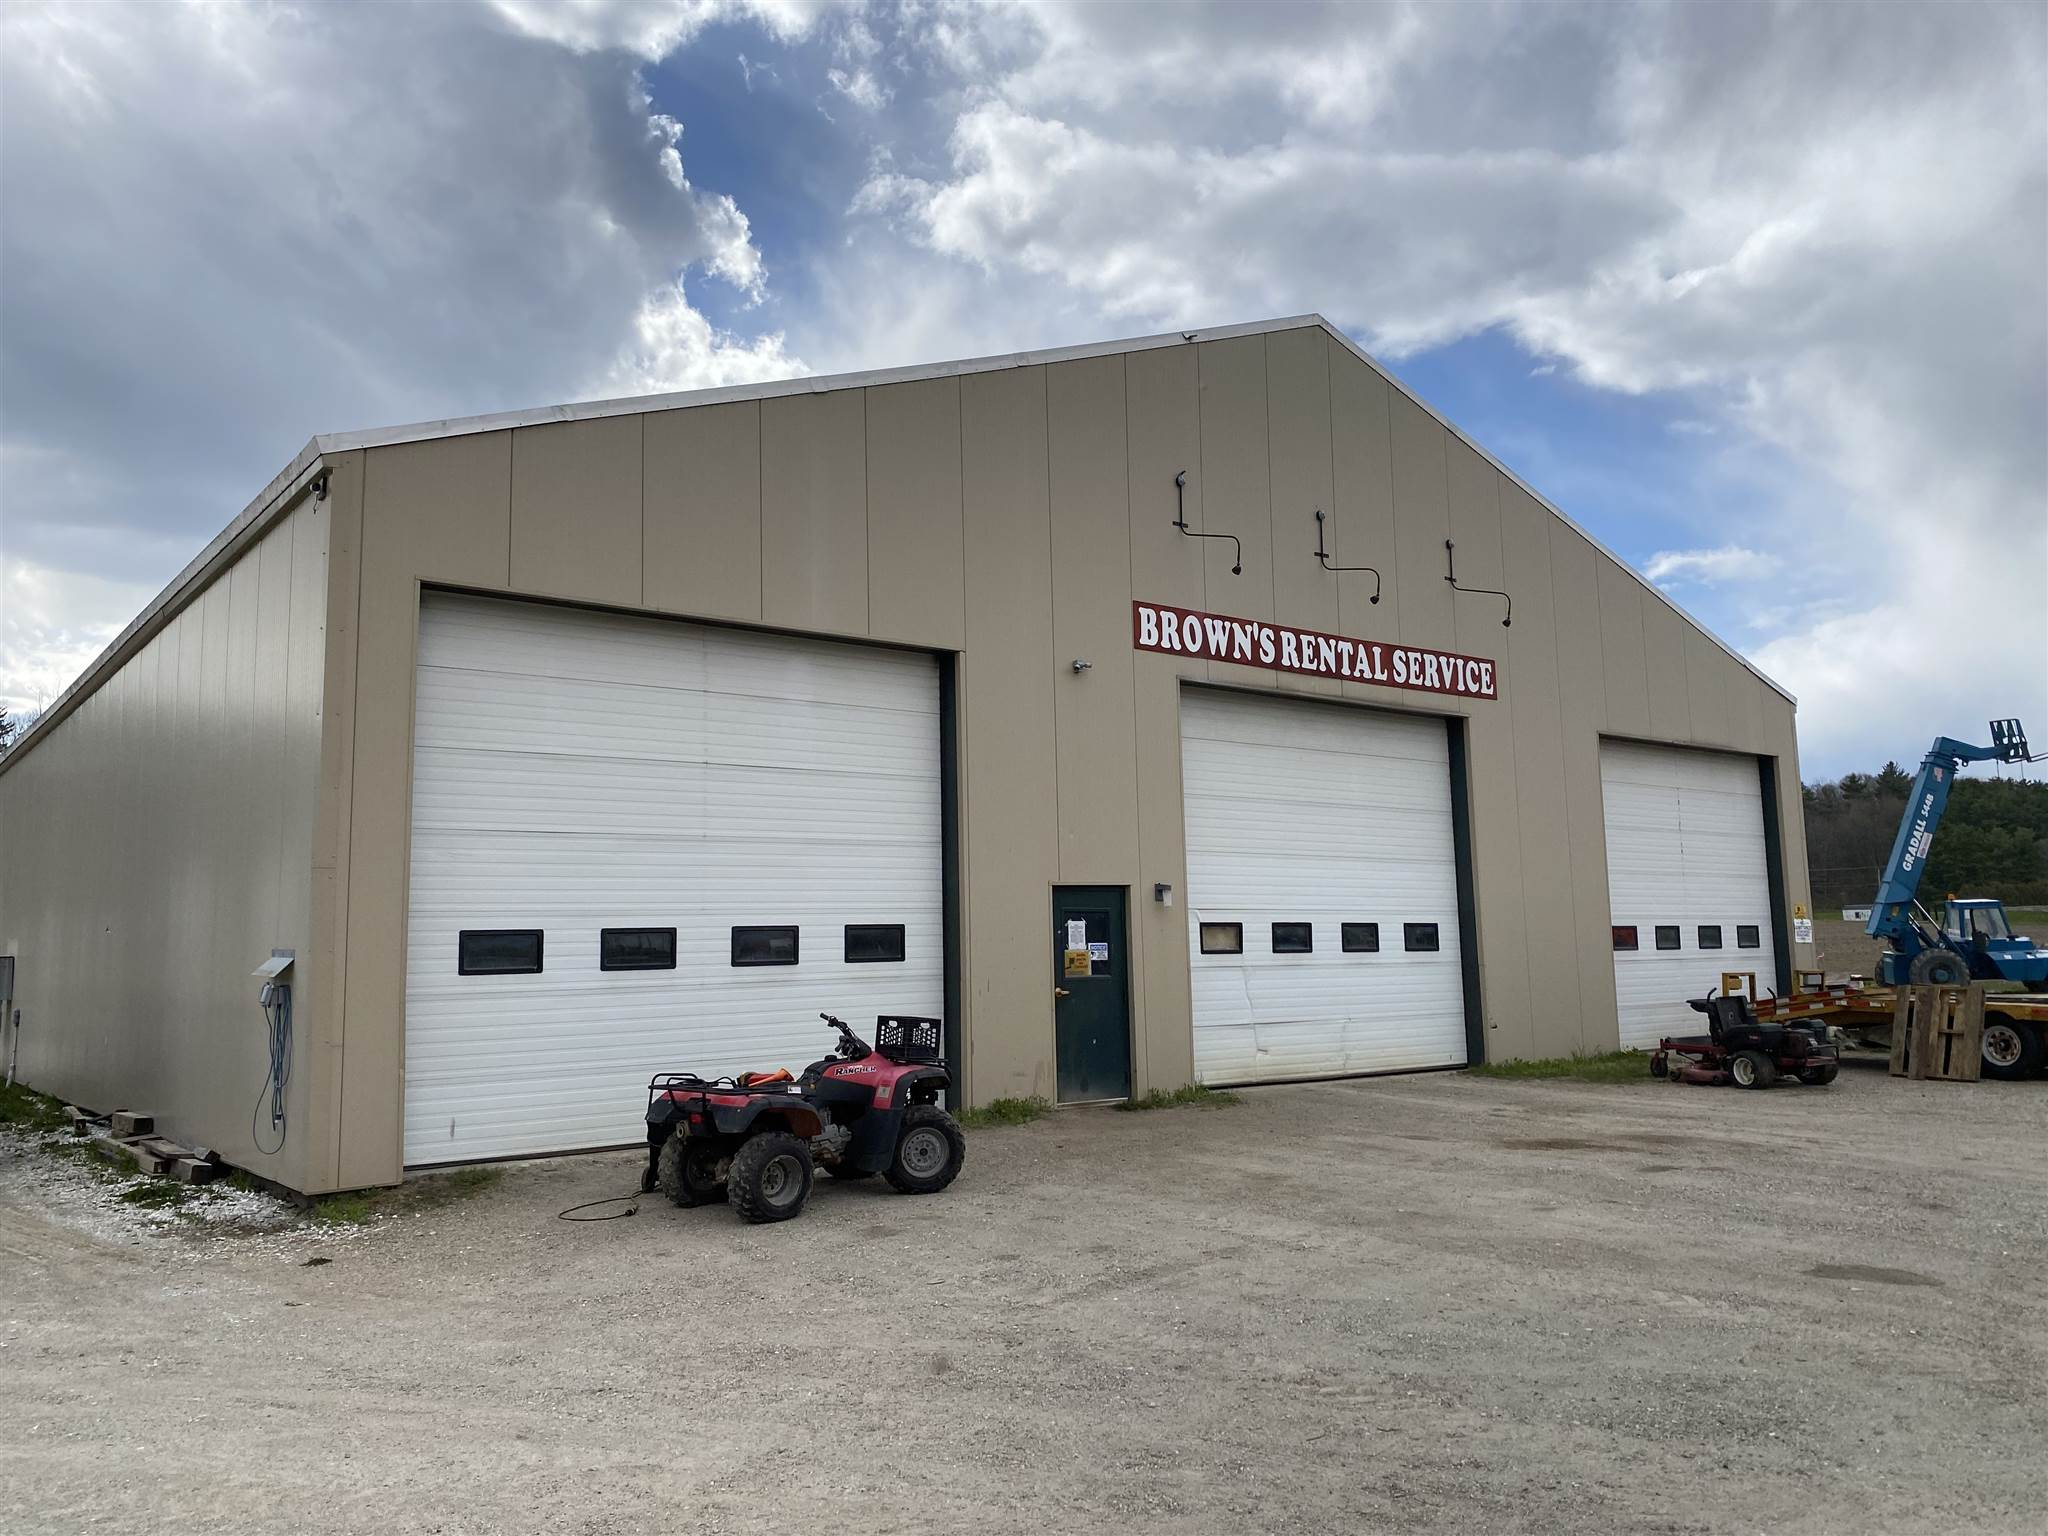 Conveniently located on Route 116 in Bristol, this 5,600 commercial building is ready for your business! The steel framed and insulated building has three bays that are 20'x80', 20'x80', and 30'x80' with 18' ceilings. This space would be perfect for large scale auto repair/mechanic, storage of large machinery, light industrial or manufacturing, or warehouse space. The space is being offered at $6/sf or $2,800/month NNN.  The building features:  -Waste oil furnace -25 horse air compressor -12,000 pound car/truck lift -4 - 14' x 14' overhead doors -80' long - 20' bay, 30' bay, 20' bay -20 x 12 storage unit -3 Phase Power  Need more space? The owner is also leasing the property across the road with an additional 6,300 sf.